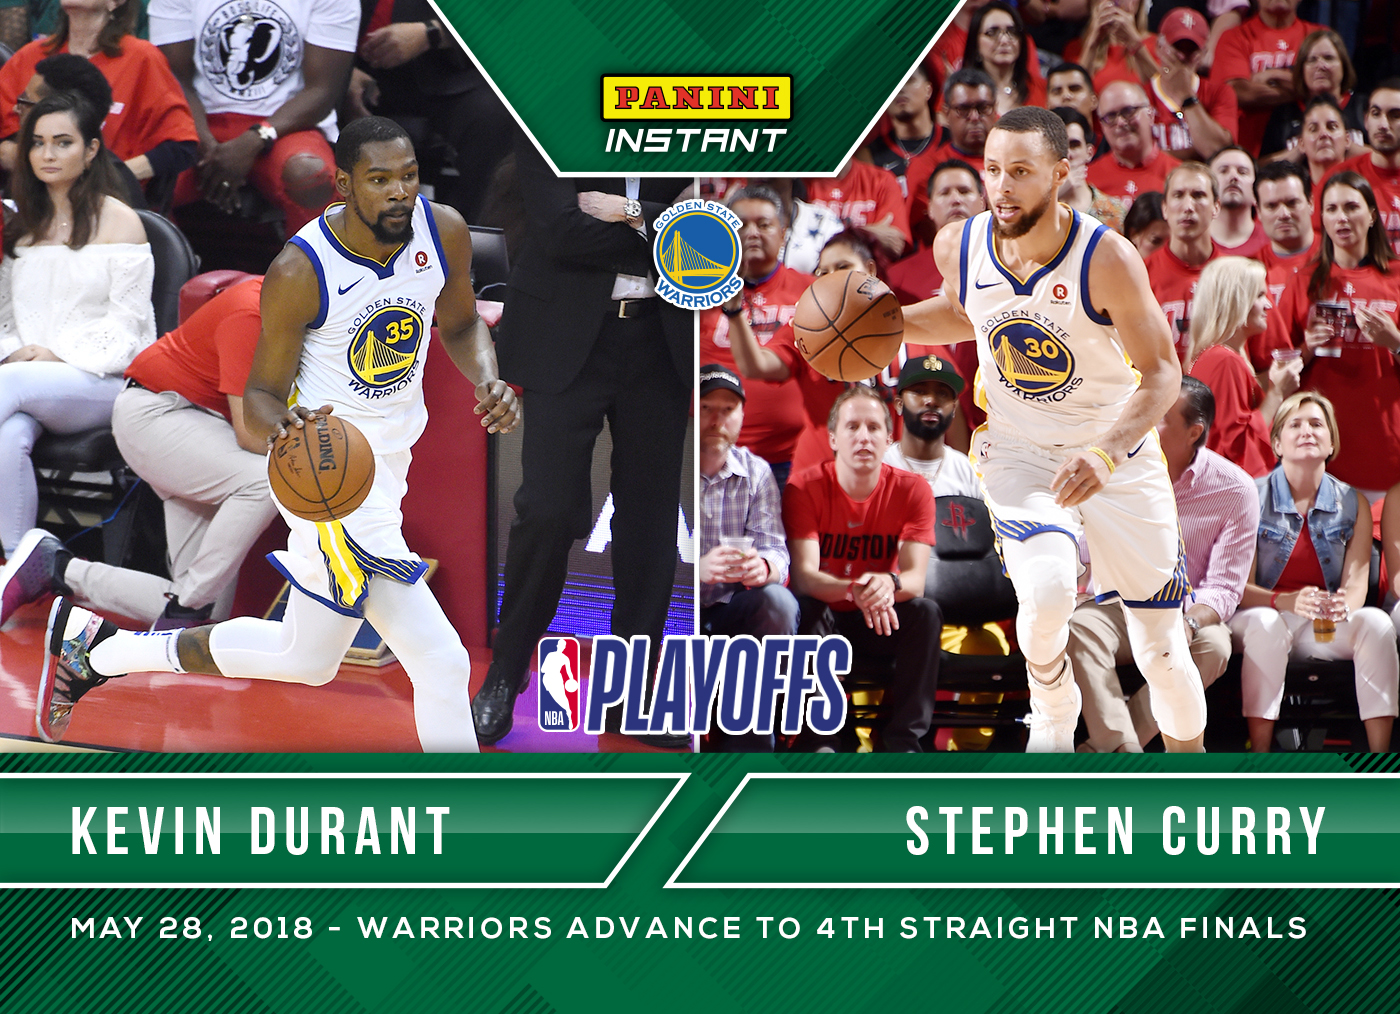 reputable site 9fb85 c20d3 Kevin Durant & Stephen Curry - 2017-18 Panini Instant NBA ...